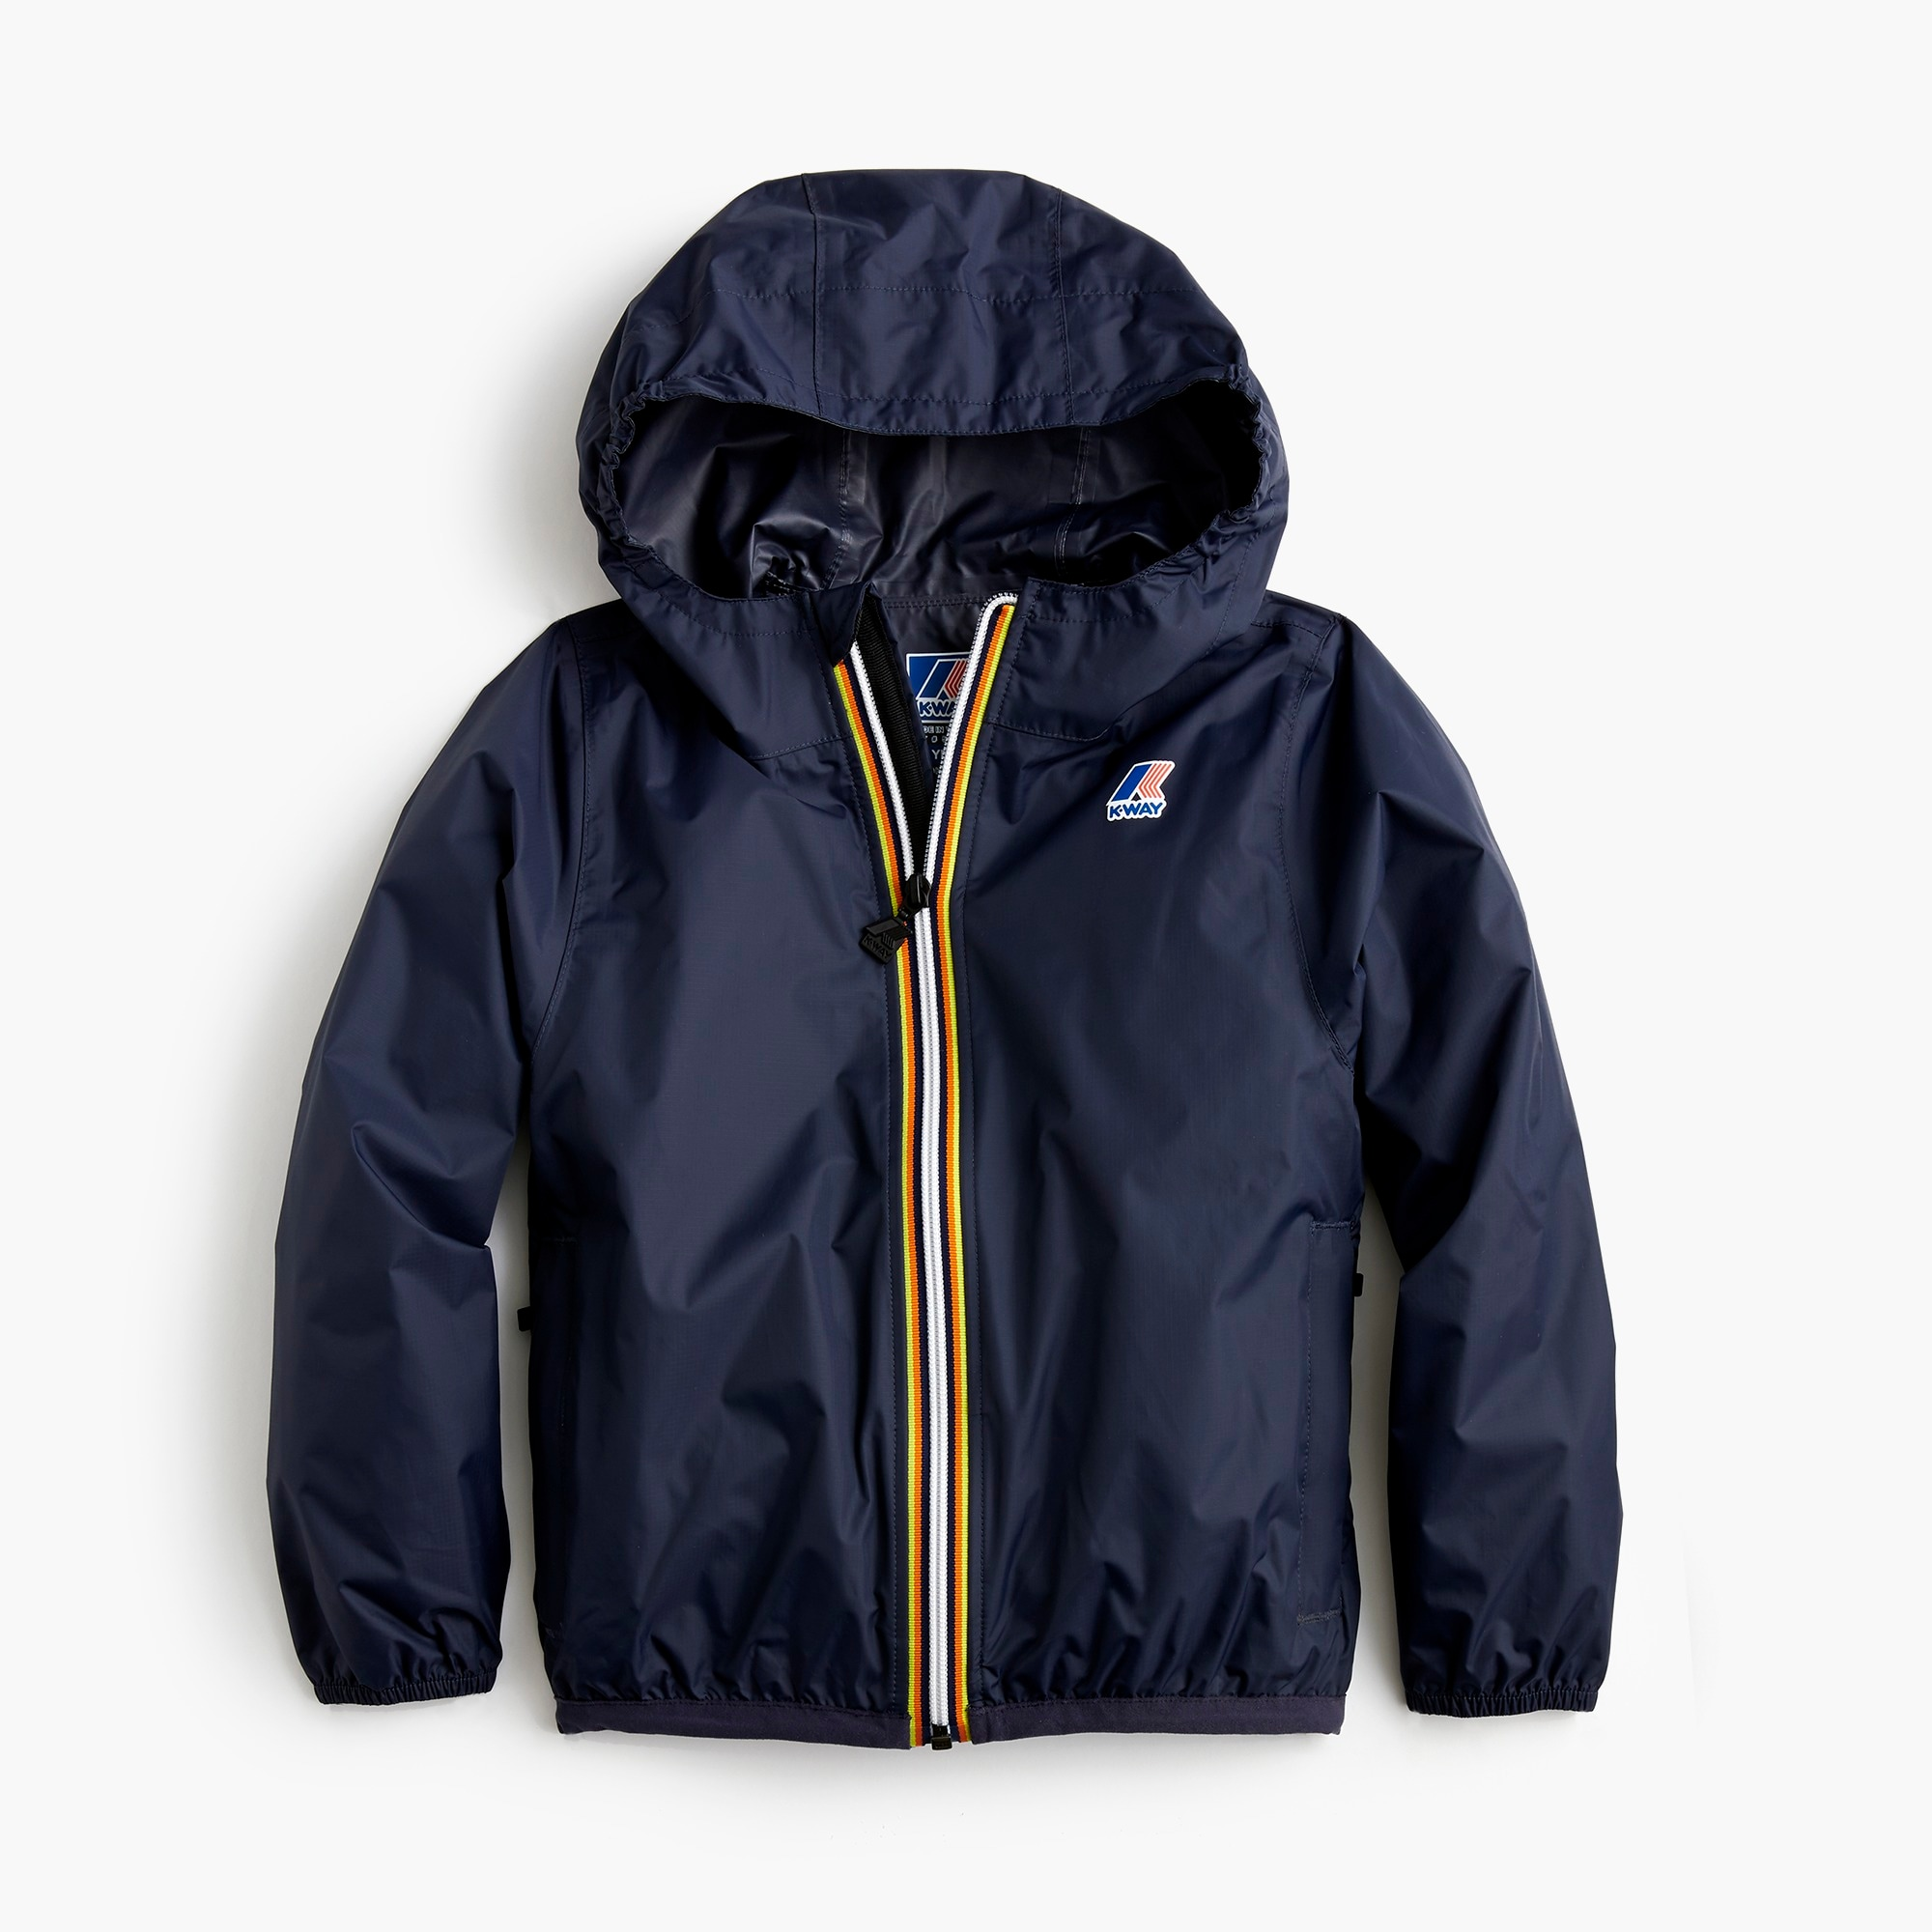 Kids' K-Way® Claude Klassic jacket